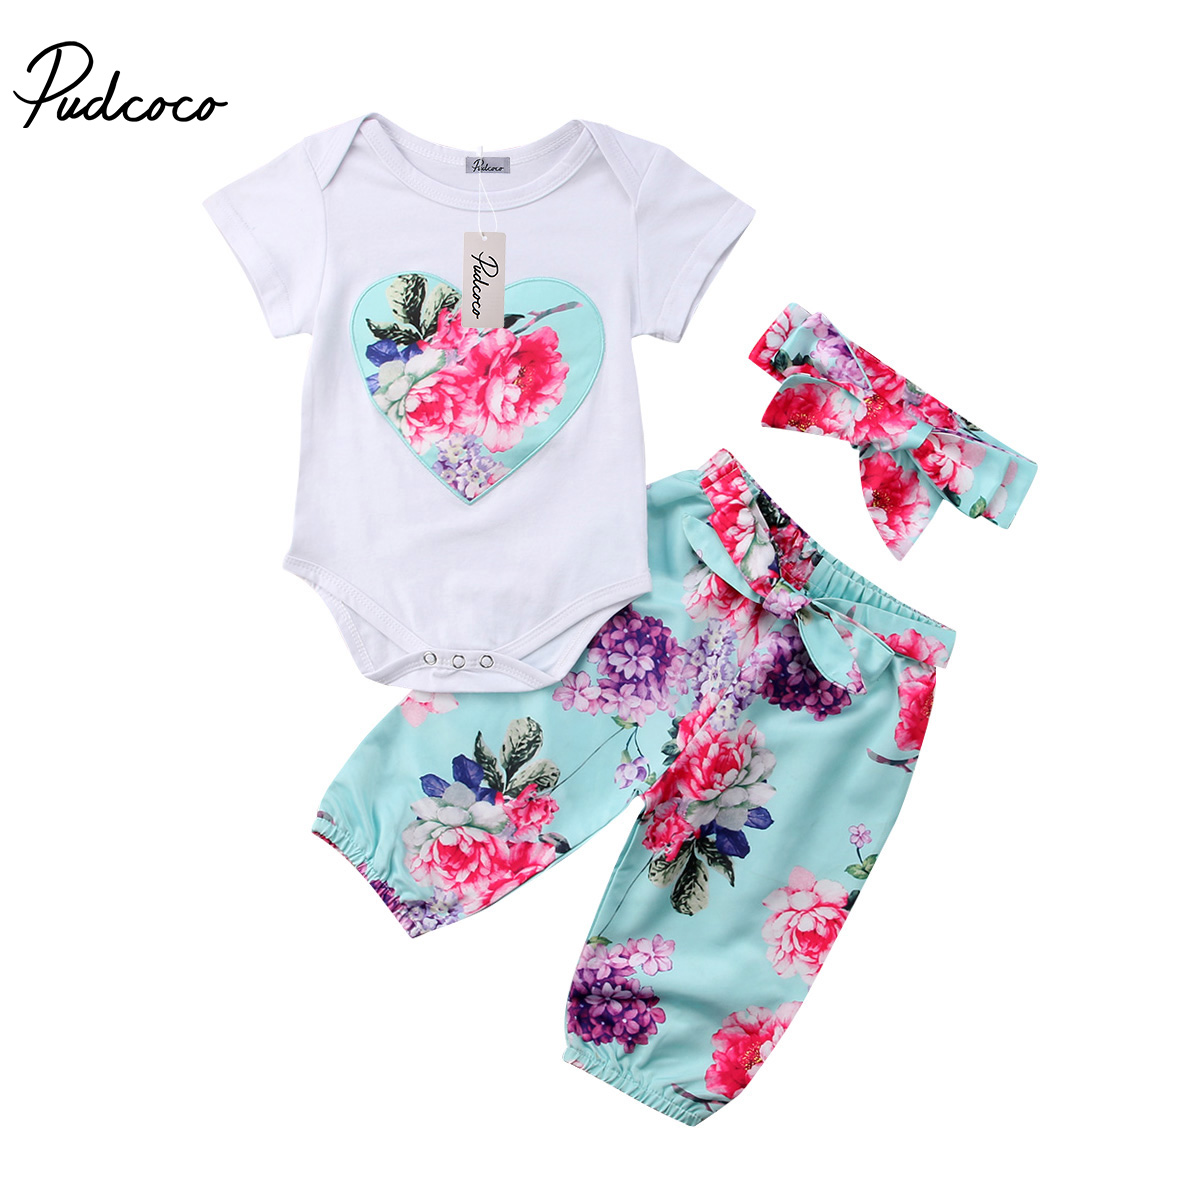 Pudcoco Newborn Baby Girls Clothes Floral Cotton Tops Romper Floral Pants Headband Outfits Summer Toddler Clothing